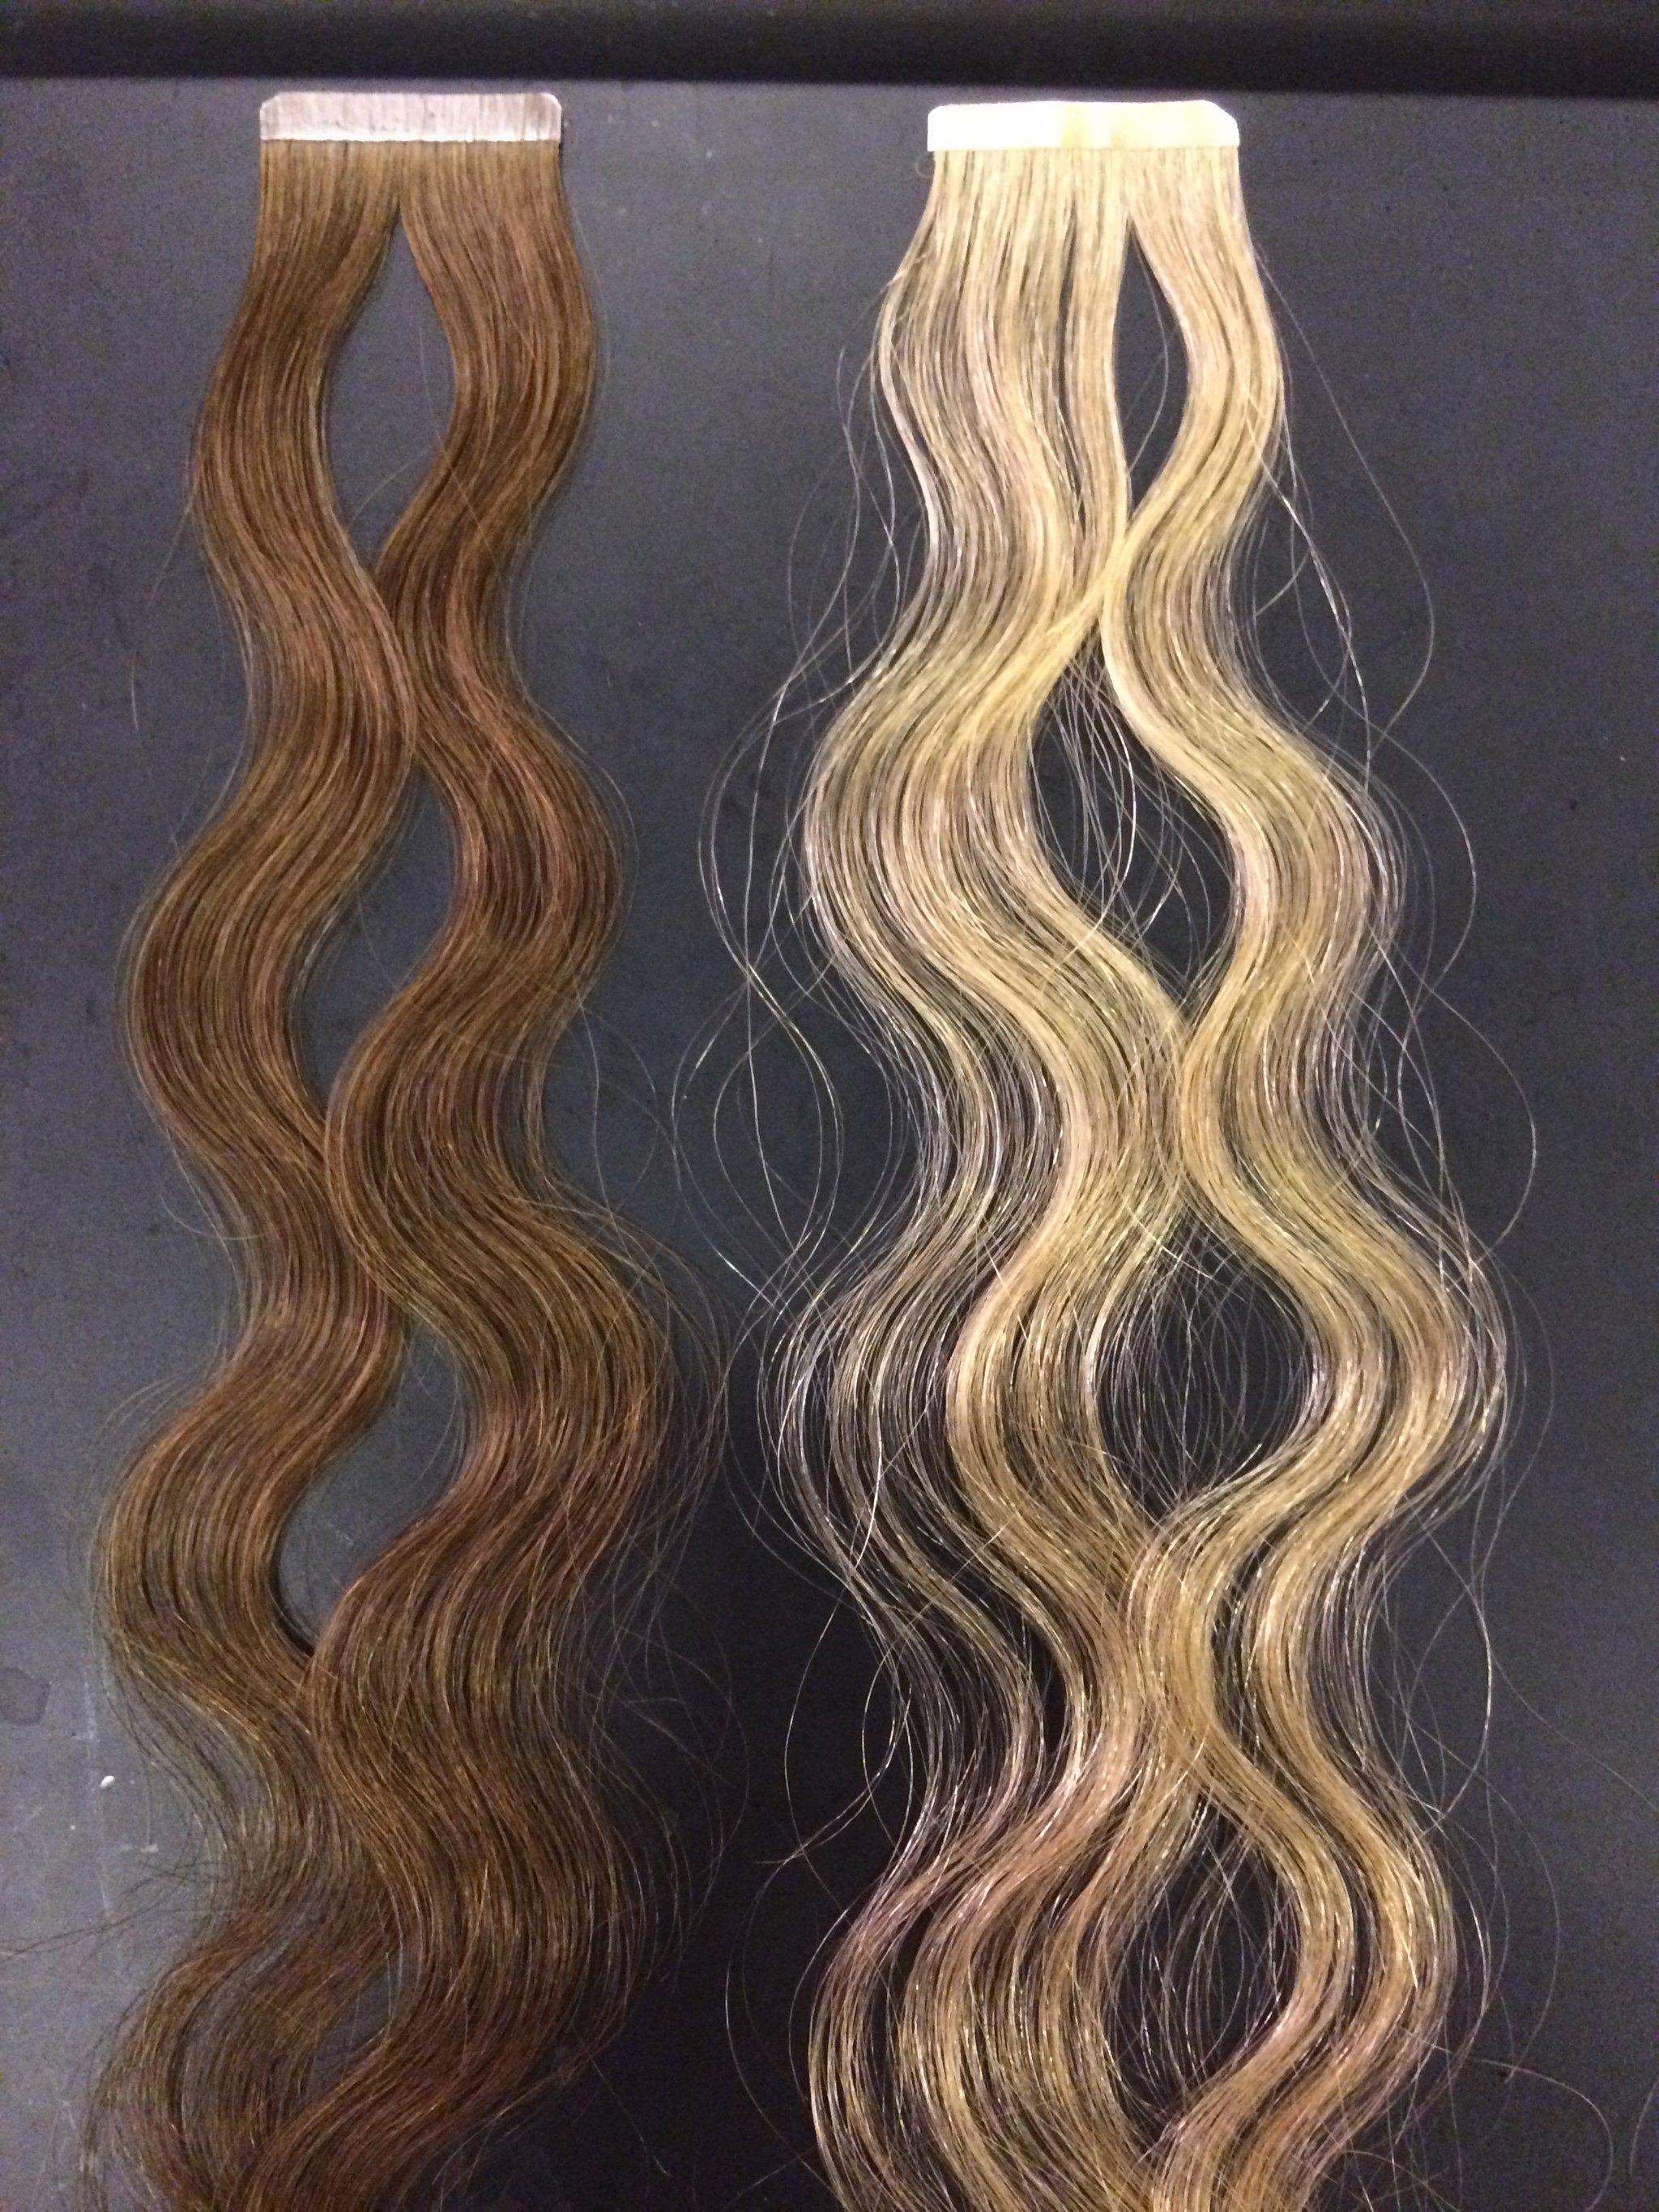 Why I Gladly Spent 800 On The Most Perfect Hair Extensions